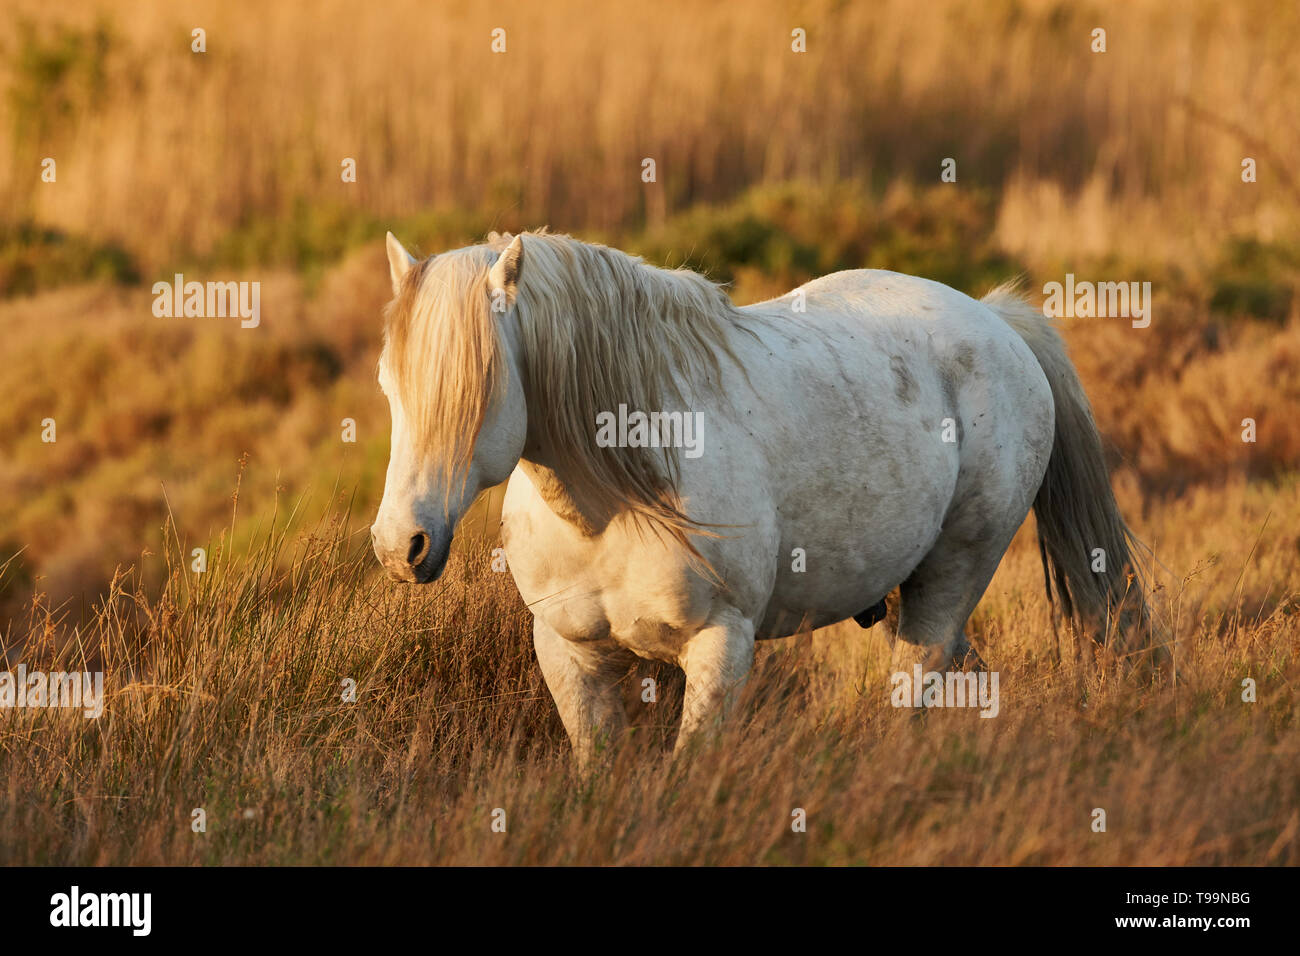 White horse of Camargue free in the swamp - Stock Image